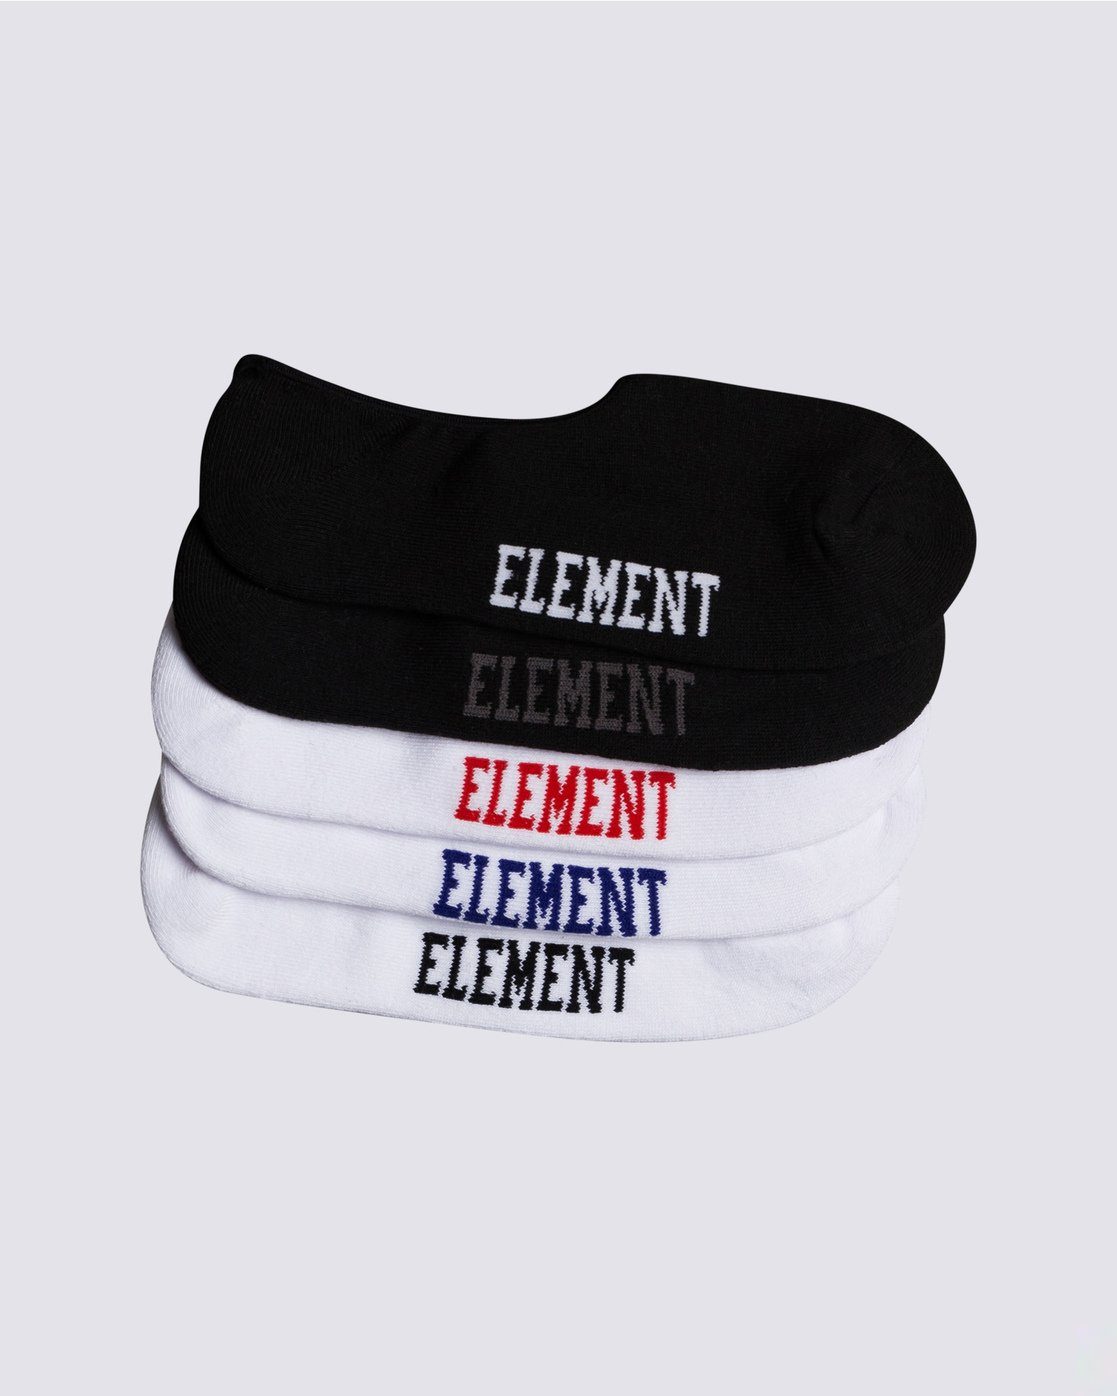 0 Low-Rise 5-Pack Socks Grey MASKELOR Element